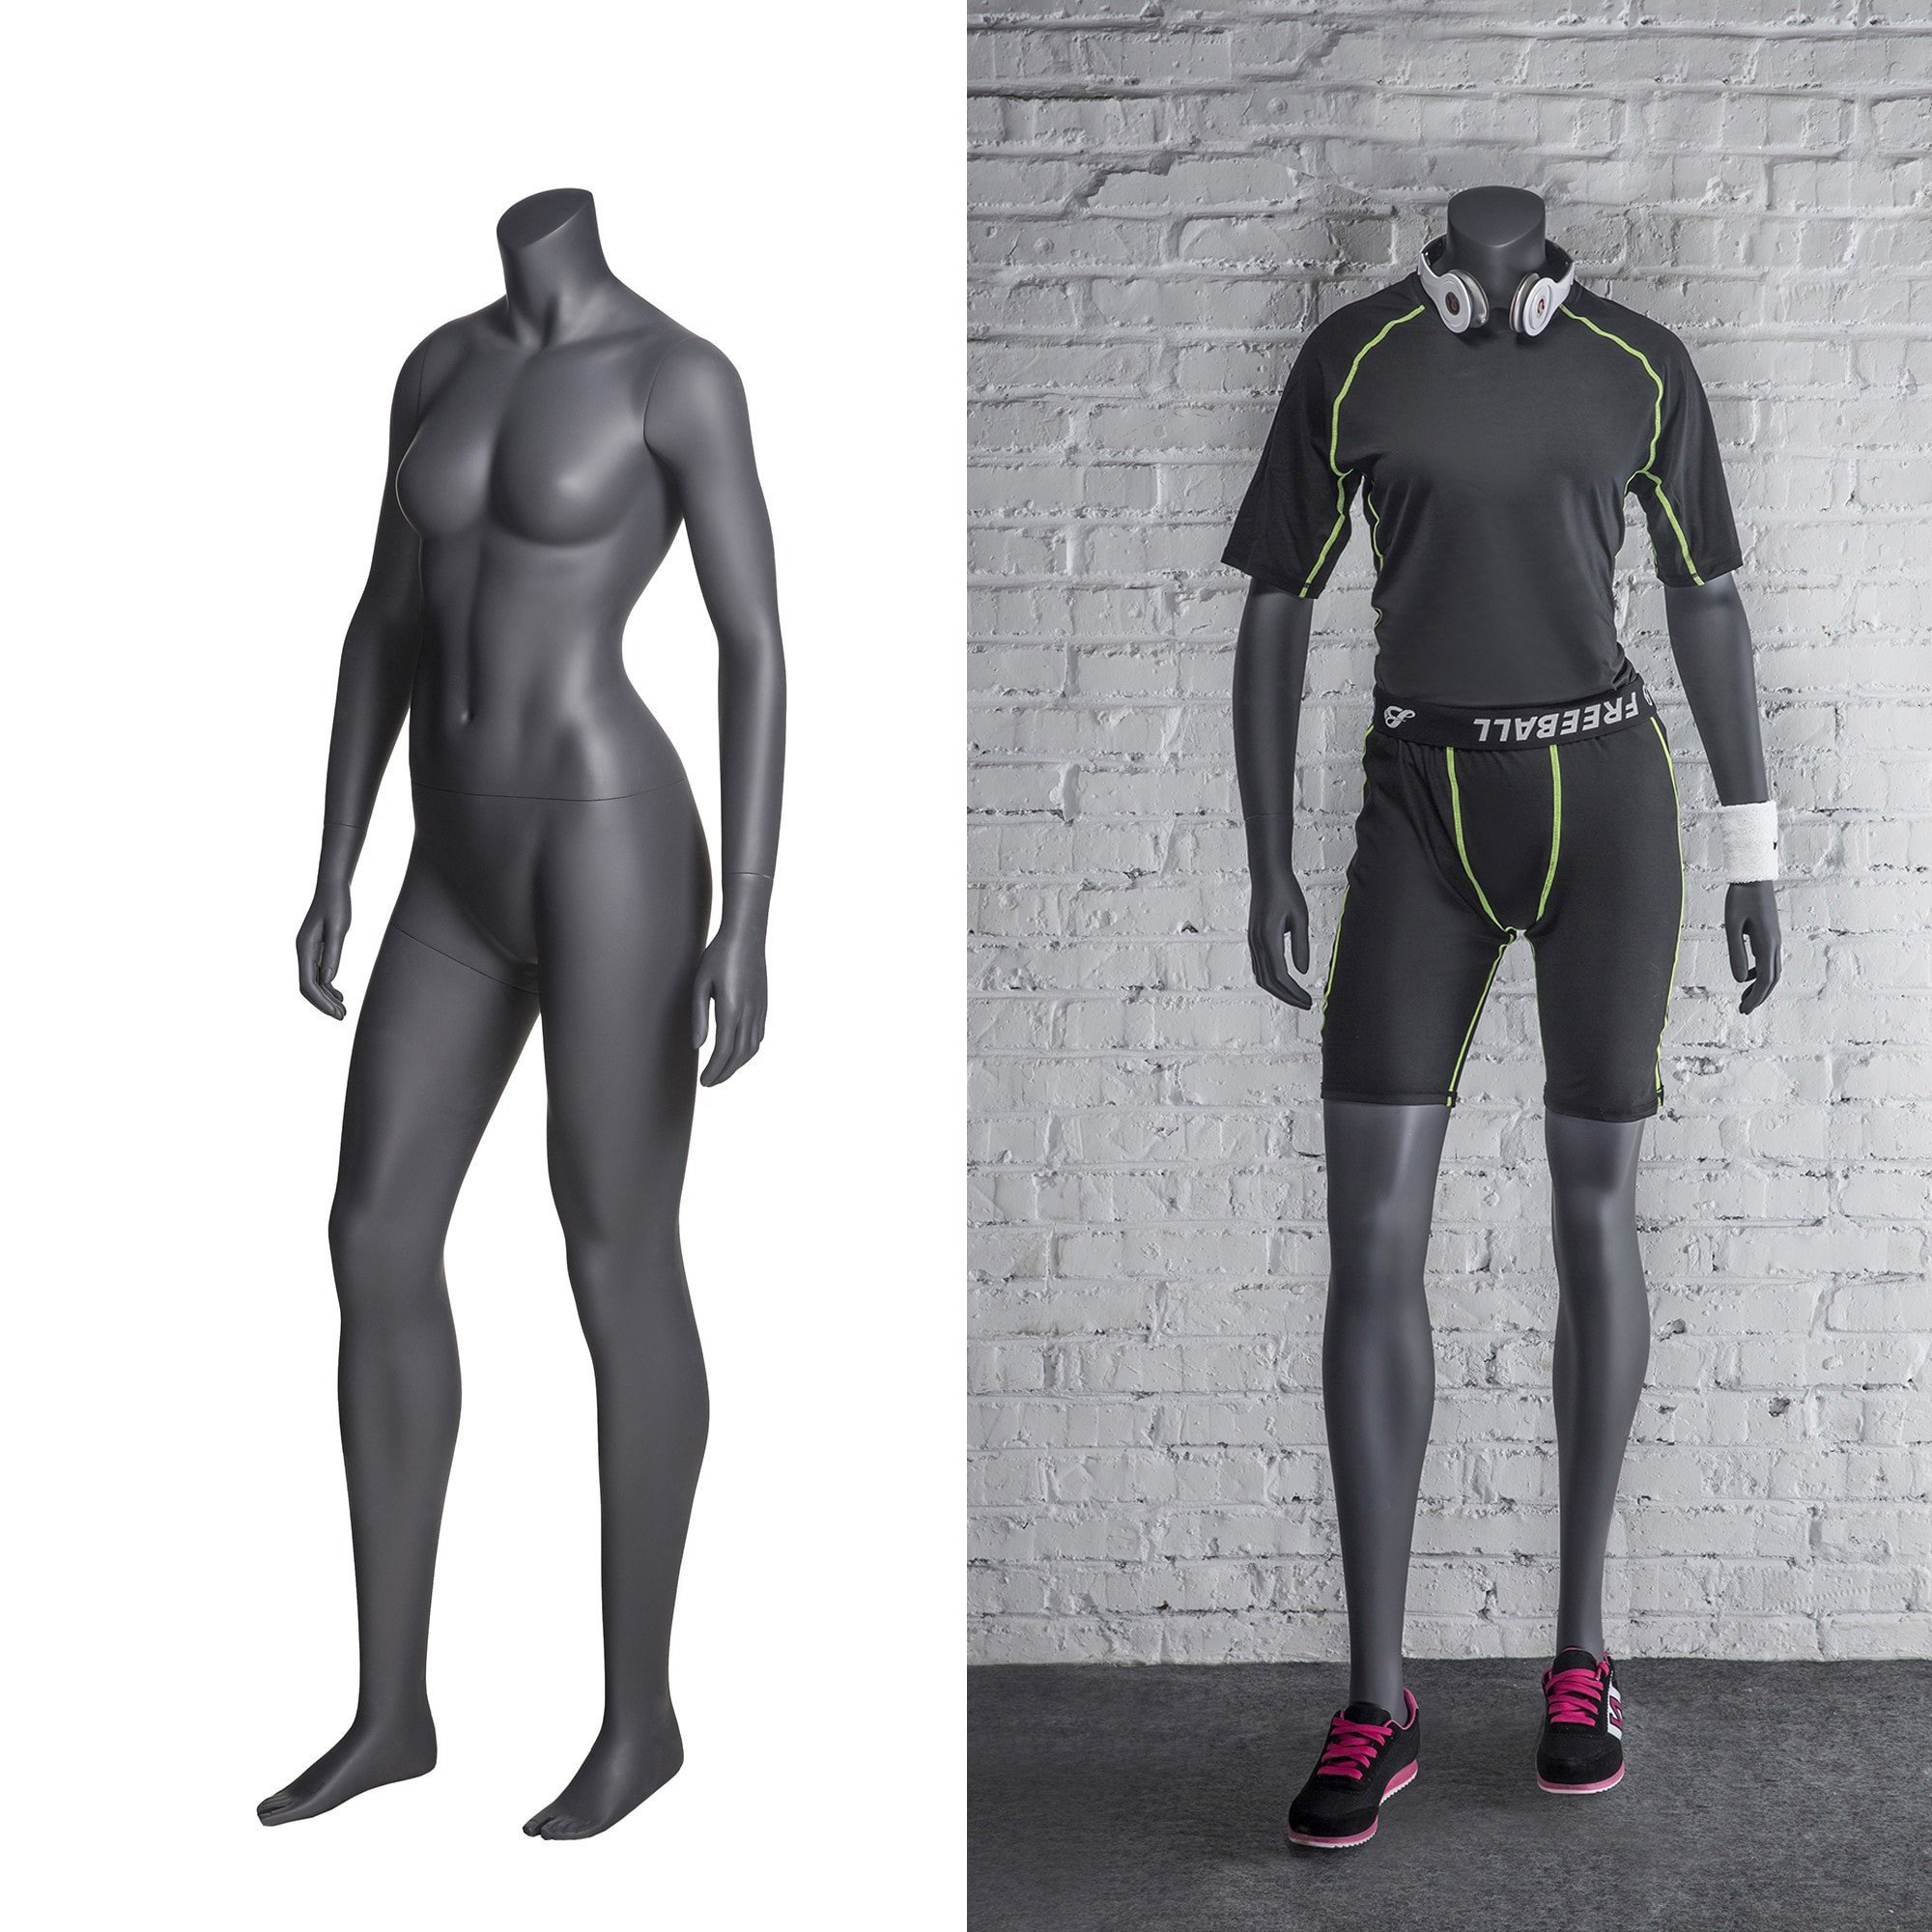 ZM-513 - Eva - Gray Supple Athletic Female Headless Mannequin